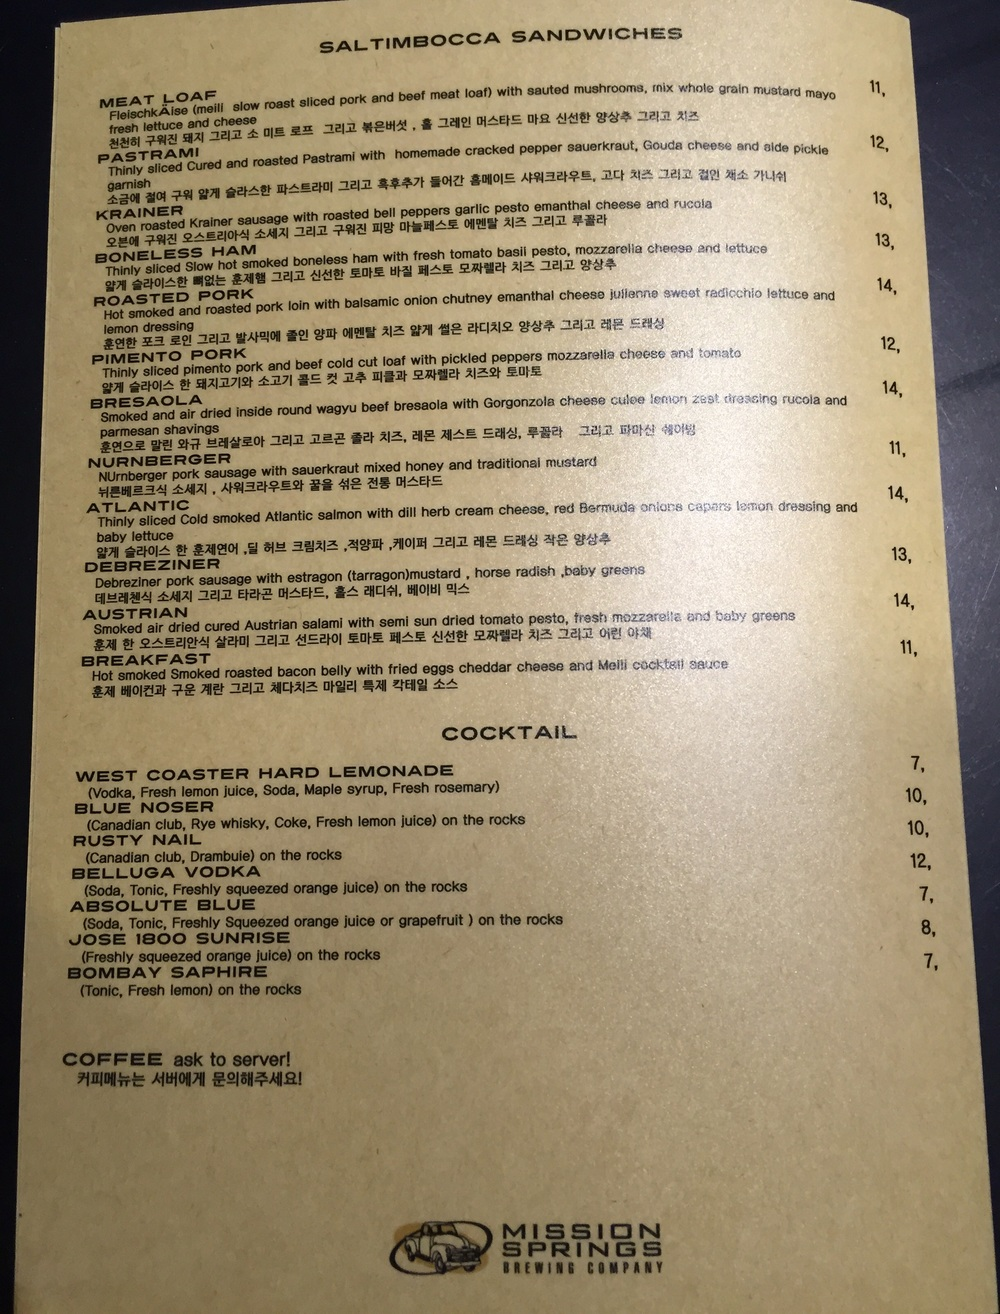 Sandwiches and Cocktail Menu.